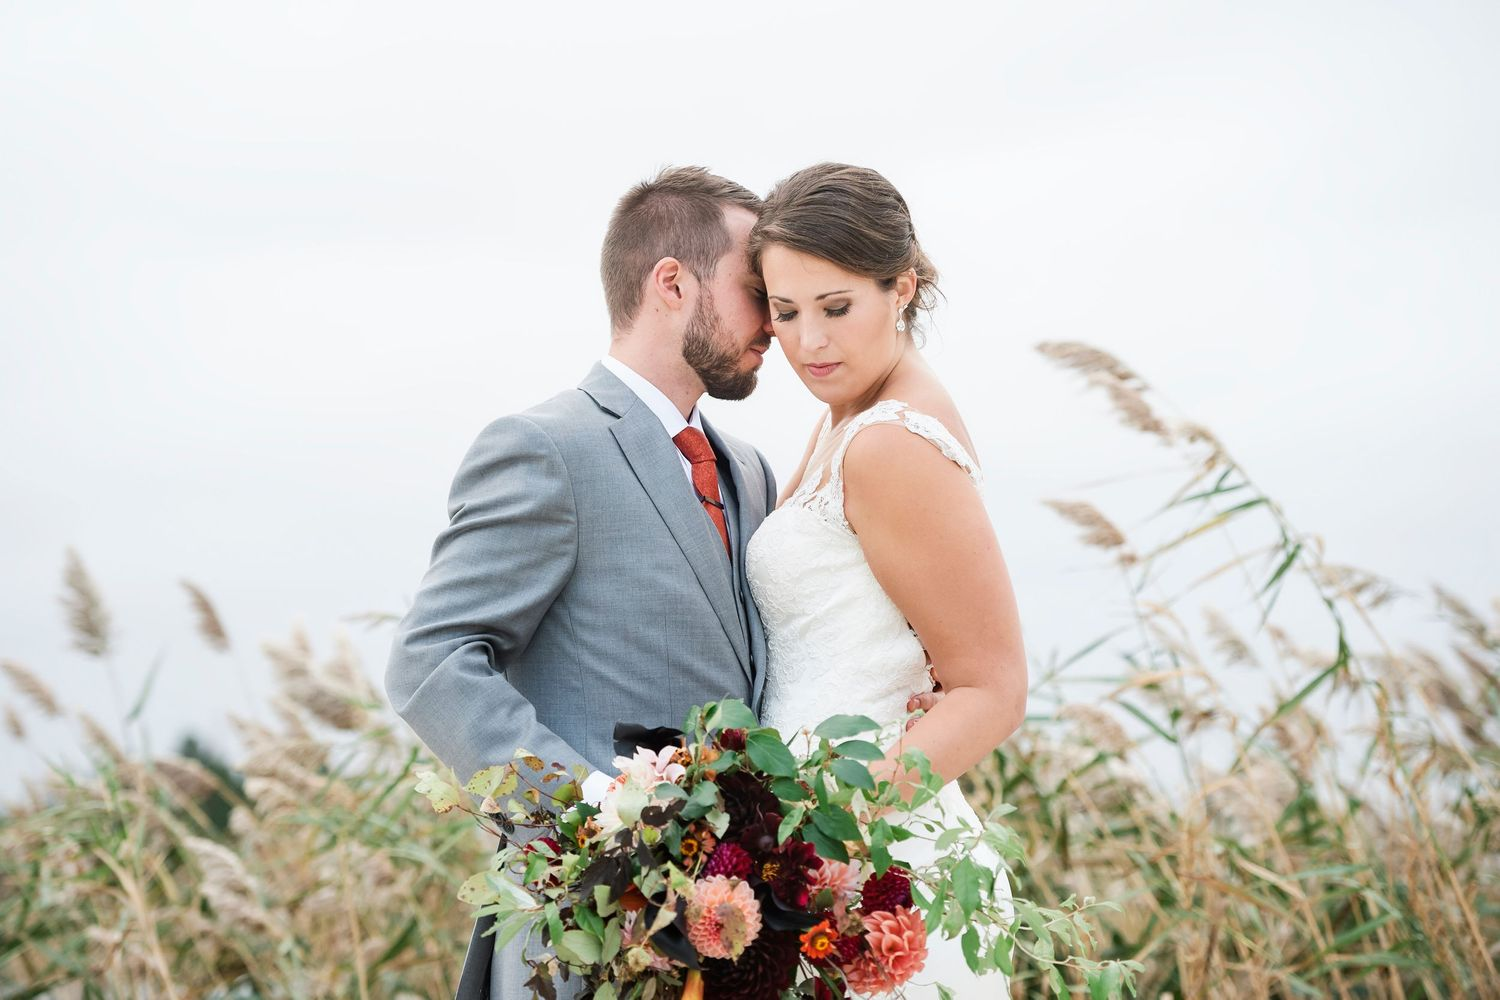 groom nuzzles bride with dune grass behind them at Bonnet Island Estate